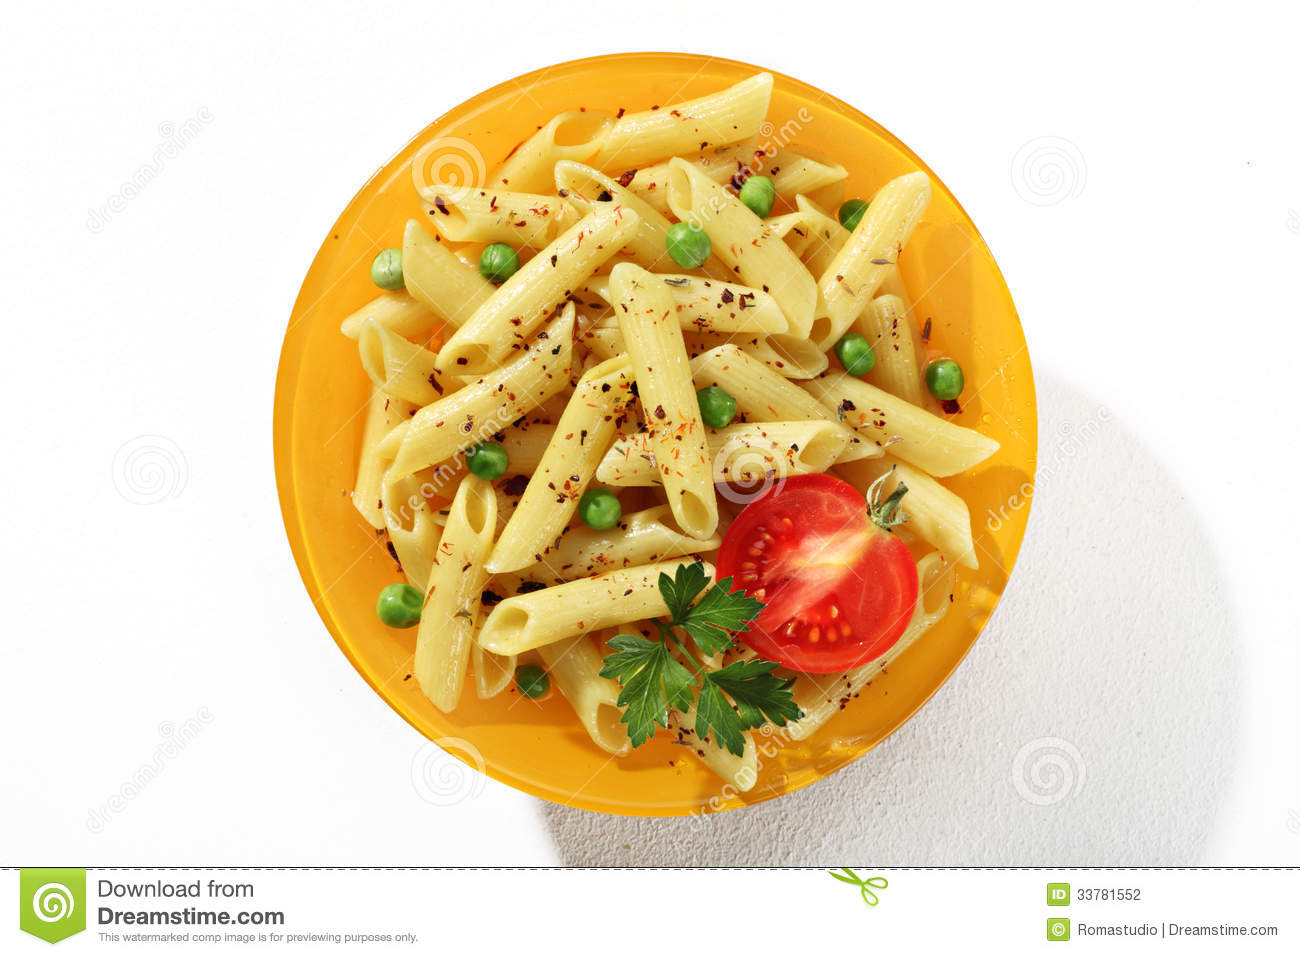 Looking Down At A Plate Of Cooked Tubular Pasta With Seasoning Herbs Stock Photo Image Of